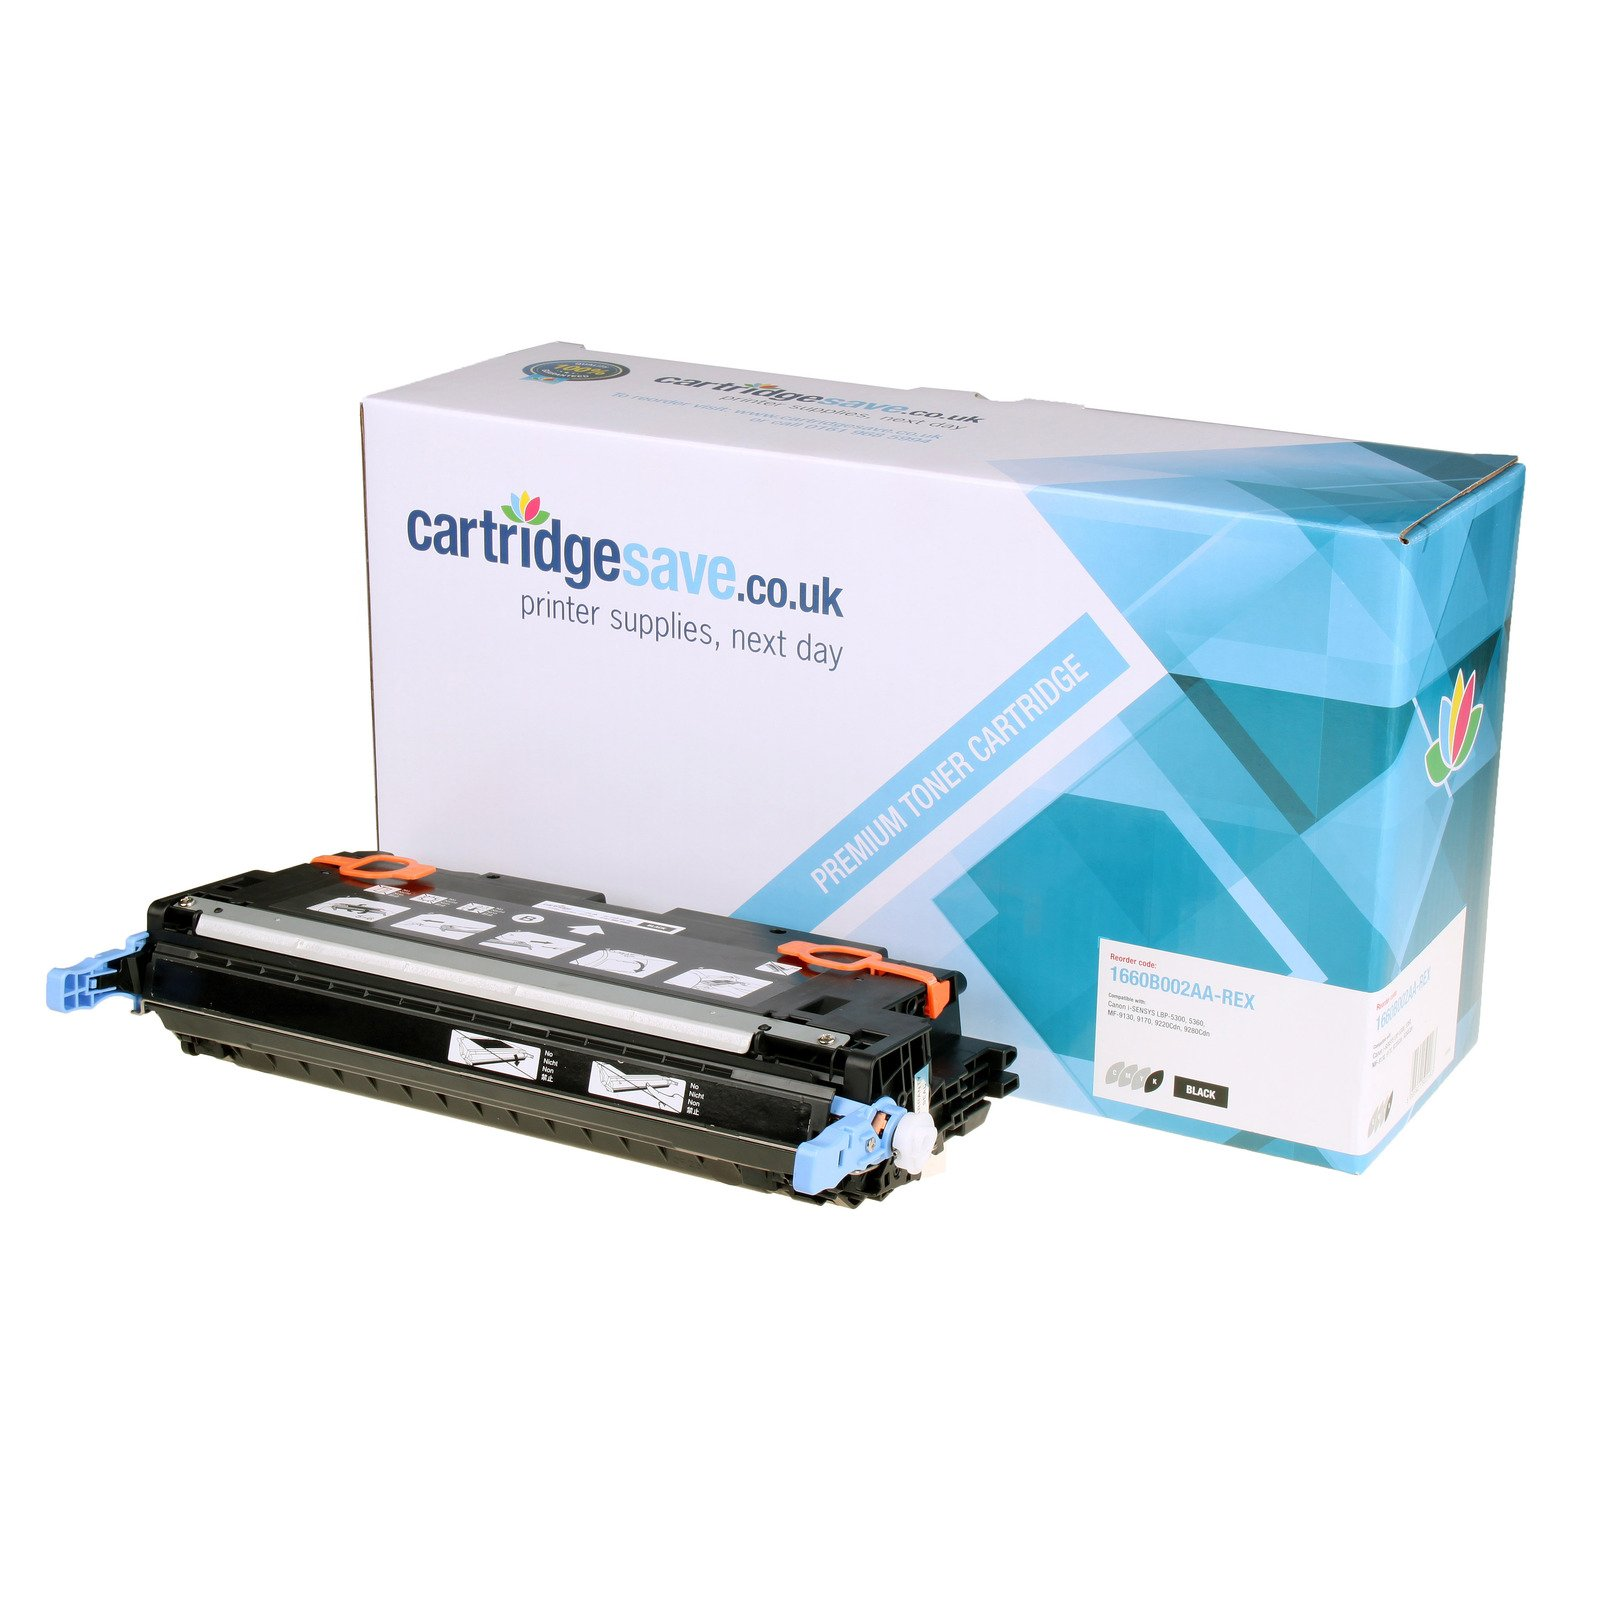 Compatible Black Canon 711 Toner Cartridge (Replaces Canon 1660B002AA Laser Printer Cartridge)